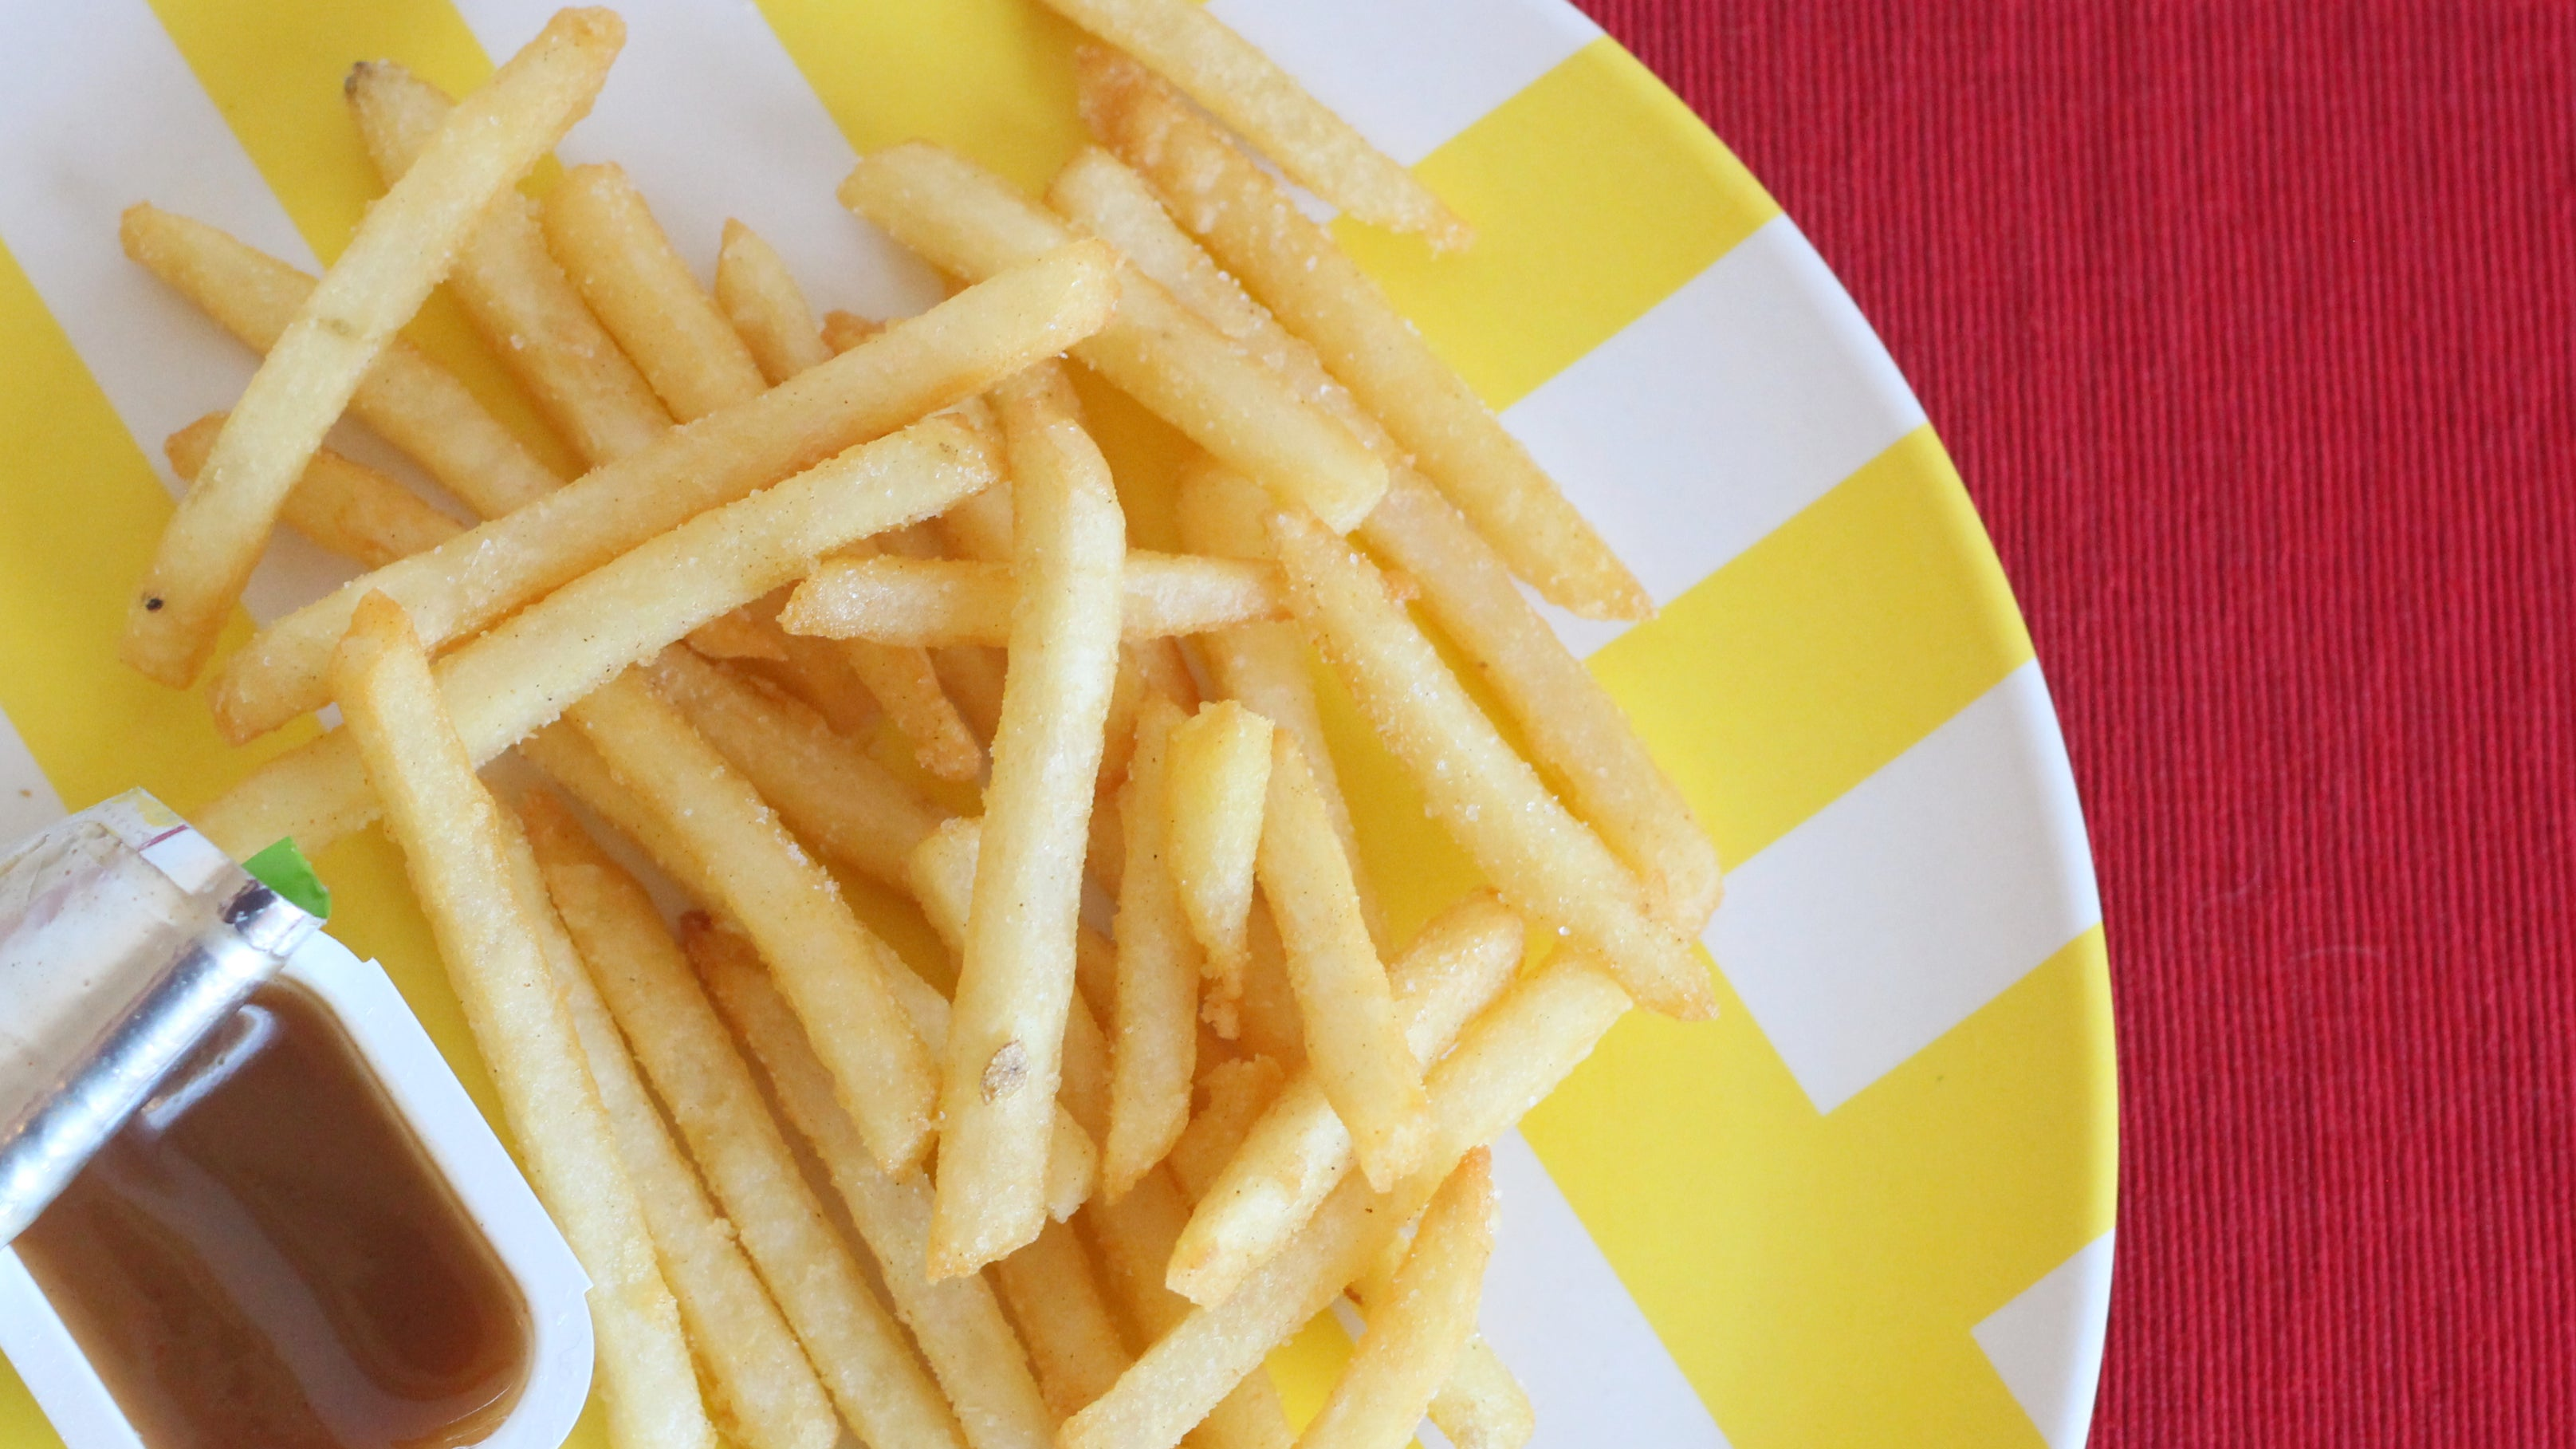 The Secret To Retro-Style McDonald's Fries: Beef Tallow